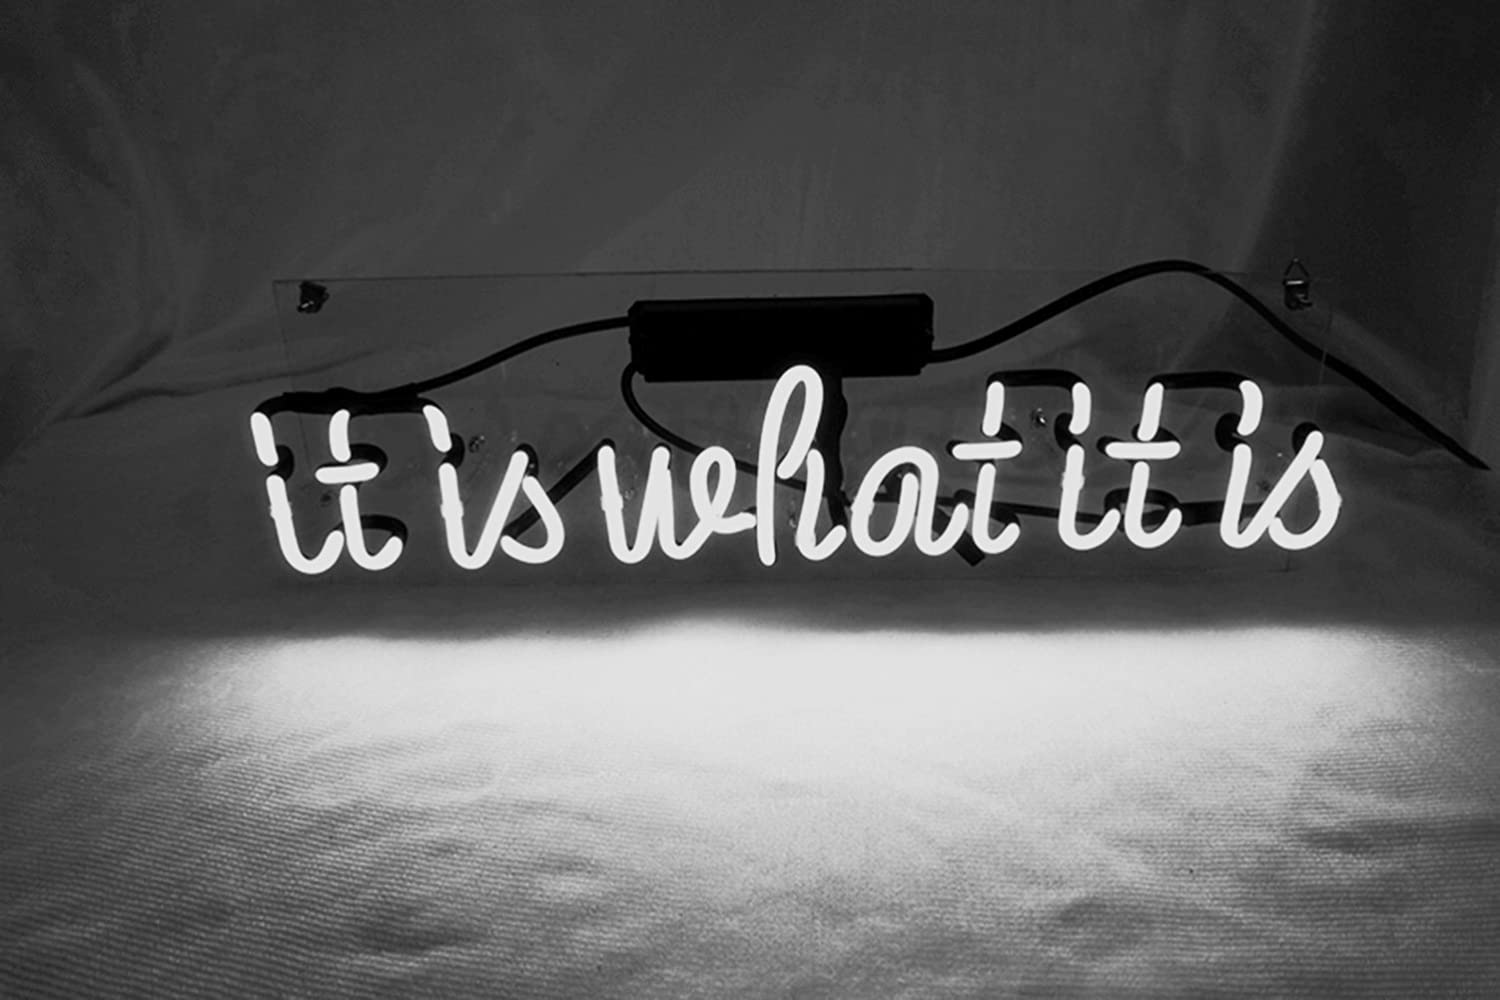 "Cool Neon Sign Decor 'It Is What It is' for Girls Bedroom Real Neon Signs for wall White Neon Room Lights Custom Neon Words for Home, Office, Studio, Apartment, Party, Christmas Decor 16.5""x 8"""